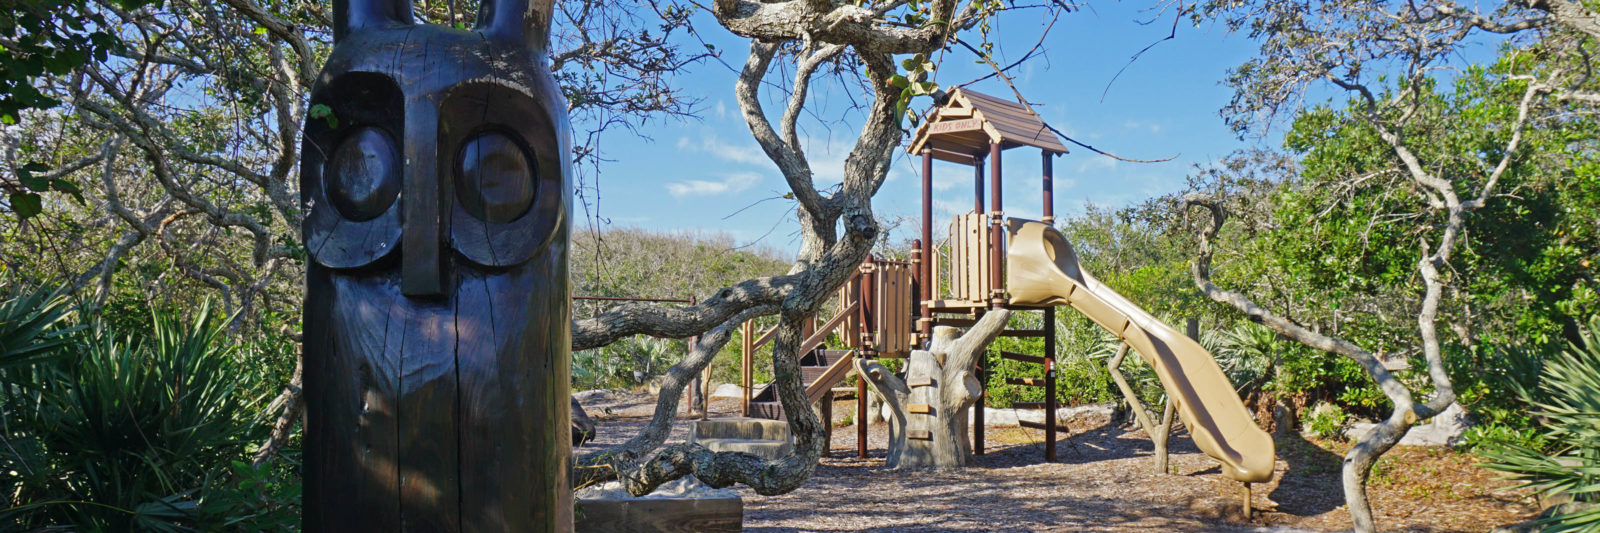 playground at Ponce Preserve